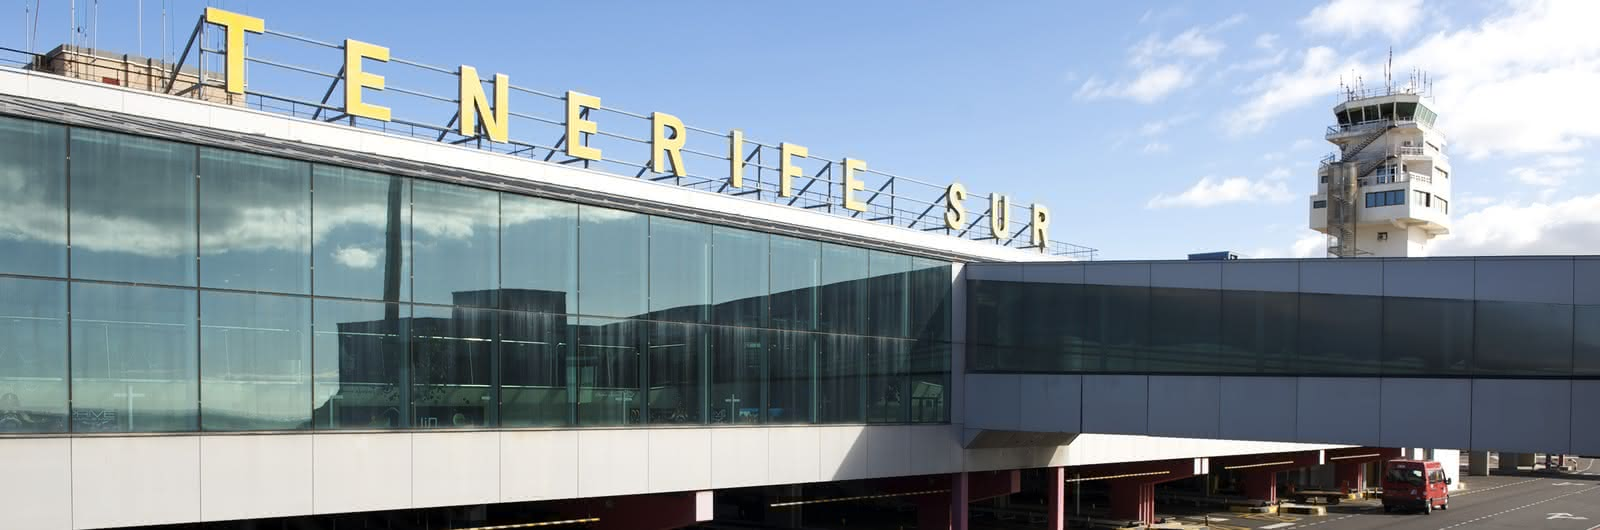 tenerife south airport header